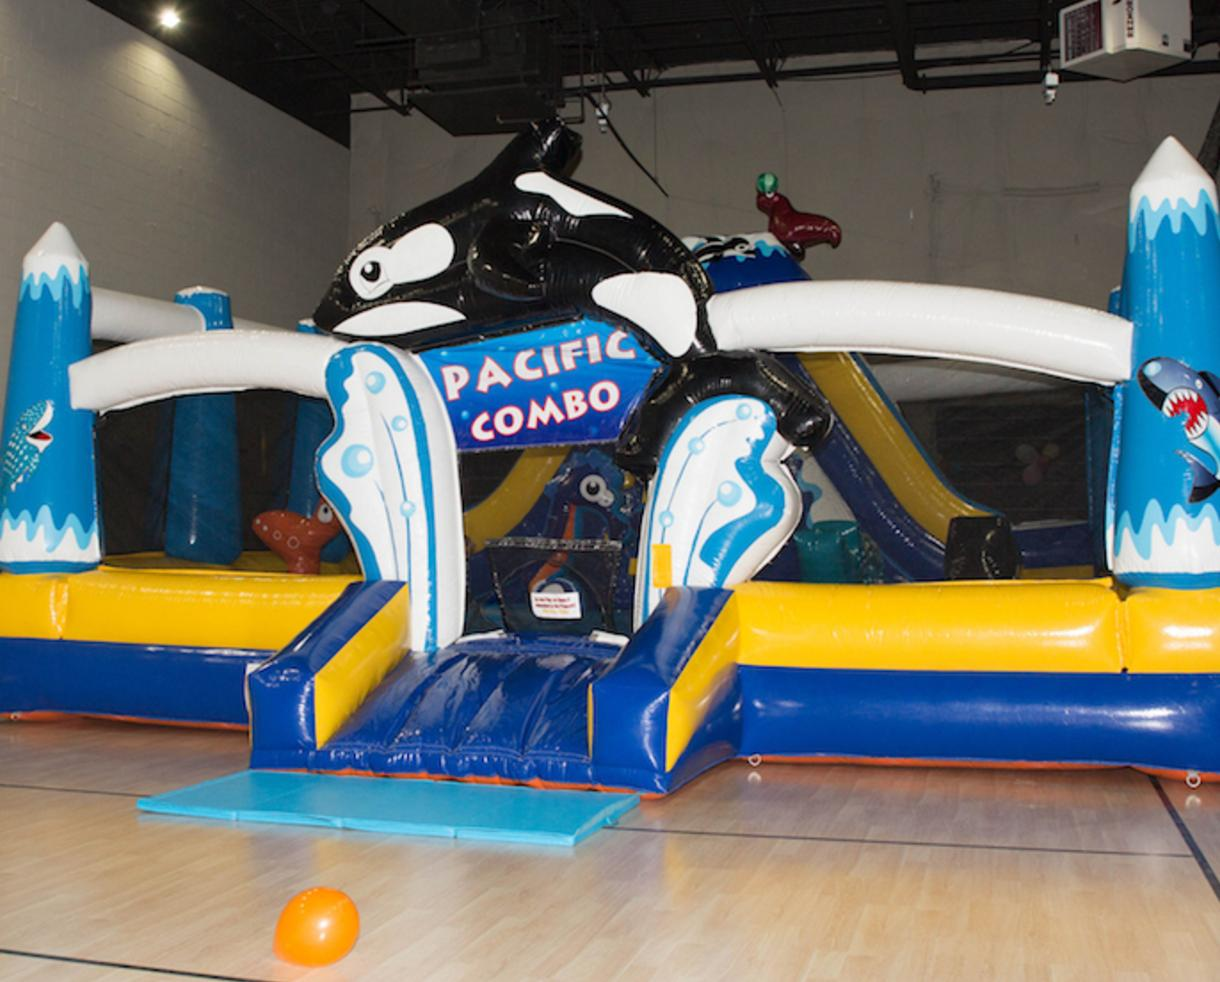 $150 for 2-Hour Bounce Birthday Party for Up to 15 Kids at Libero Bounce & Party in Sterling (40% Off)